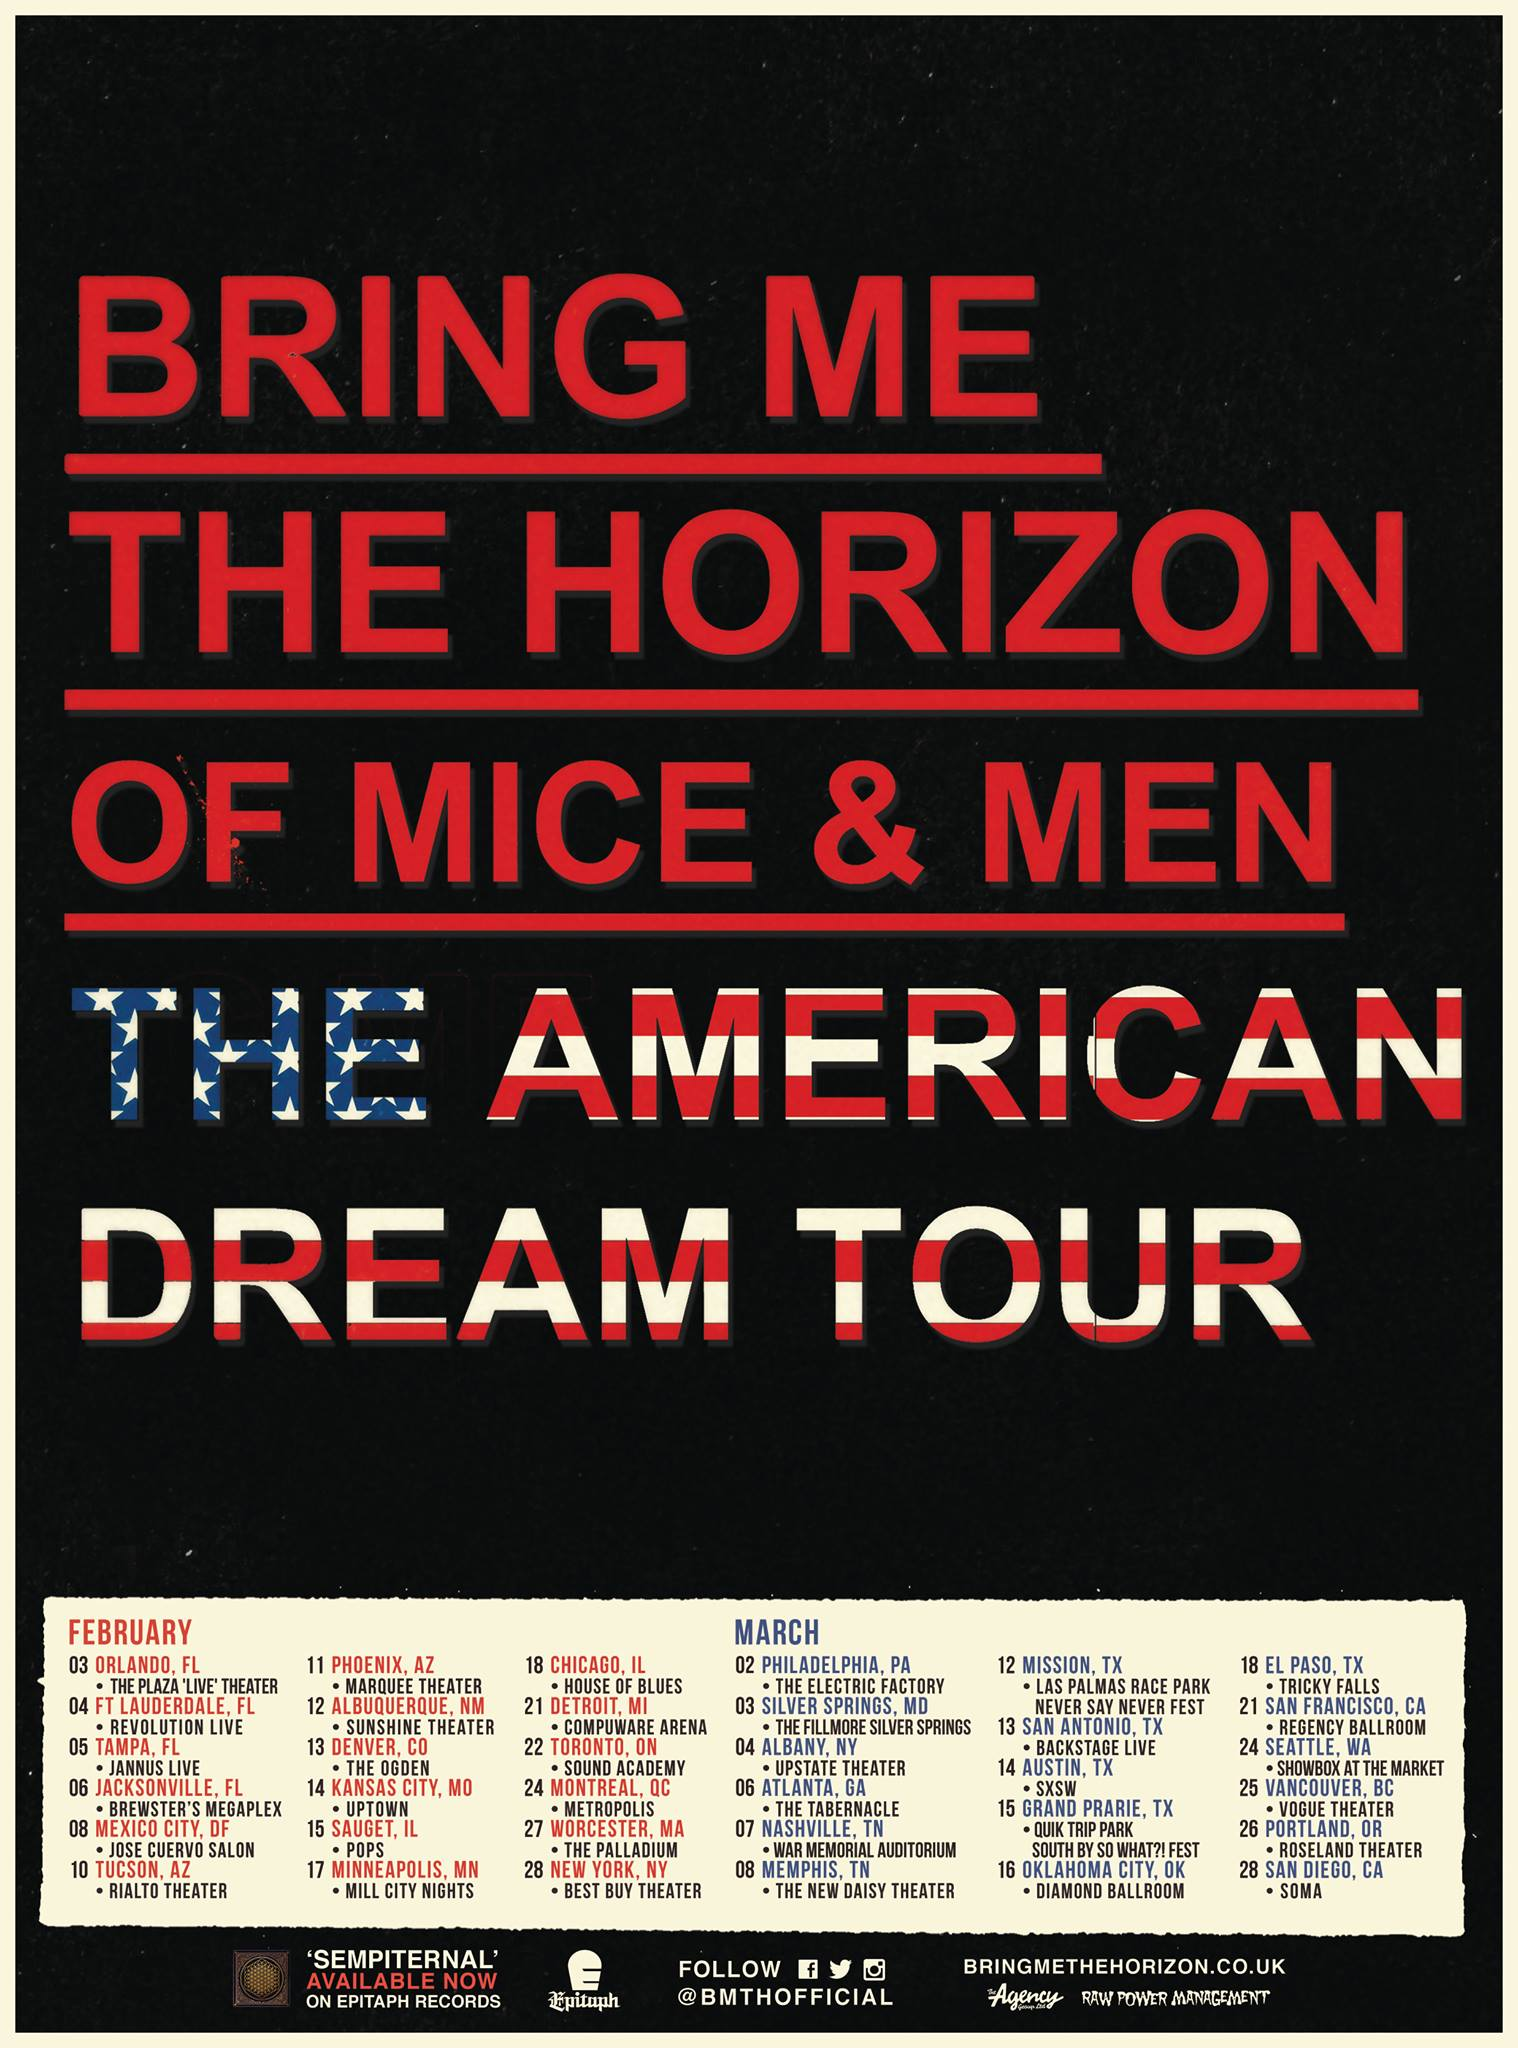 bring-me-the-horizon-of-mice-and-men-the-american-dream-tour